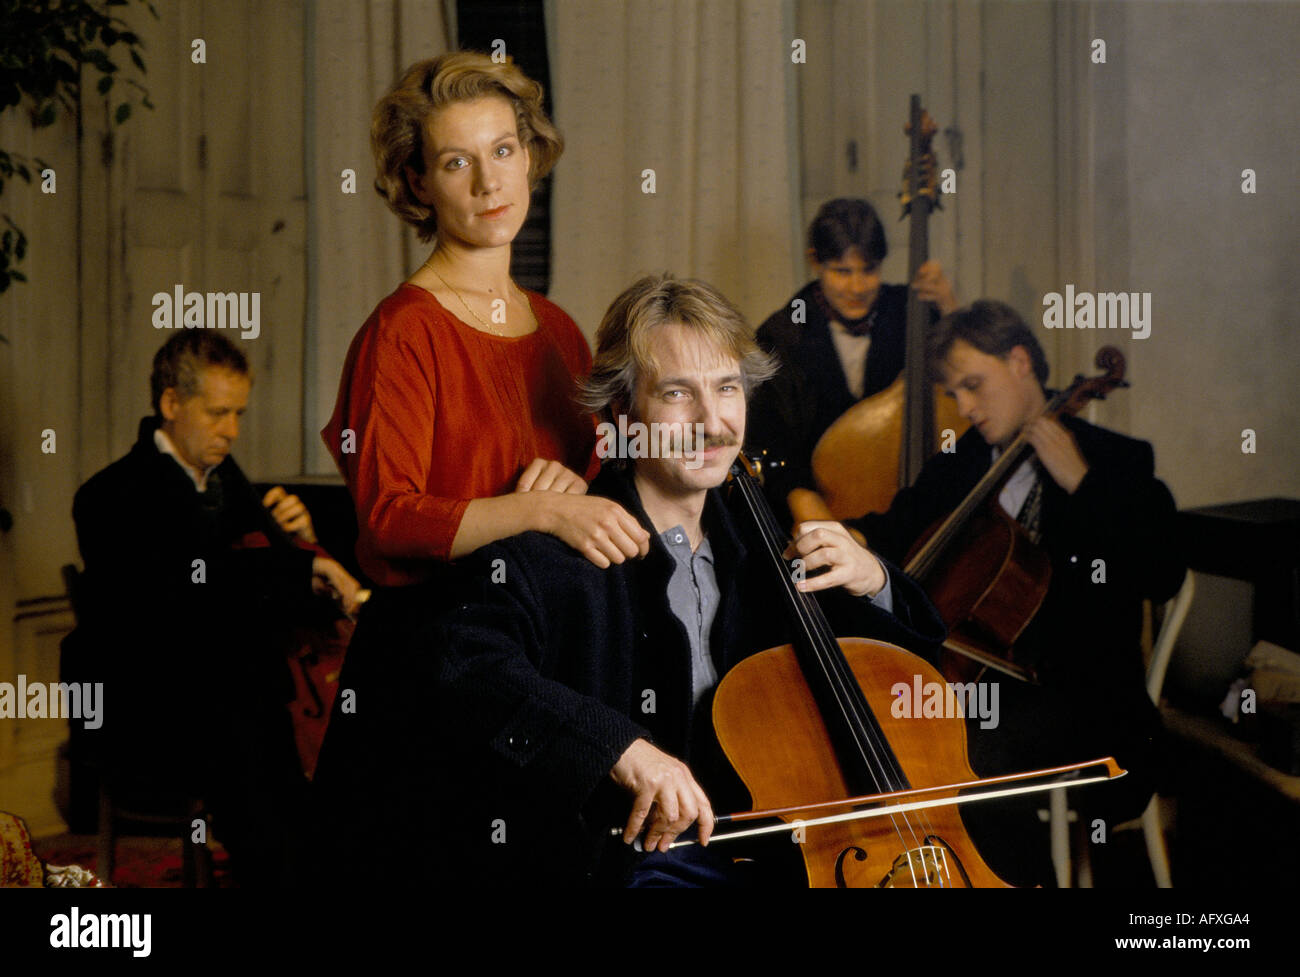 Alan Rickman British actor playing cello Juliet Stevenson British actress on film set of Truly Madly Deeply. 1991 - Stock Image